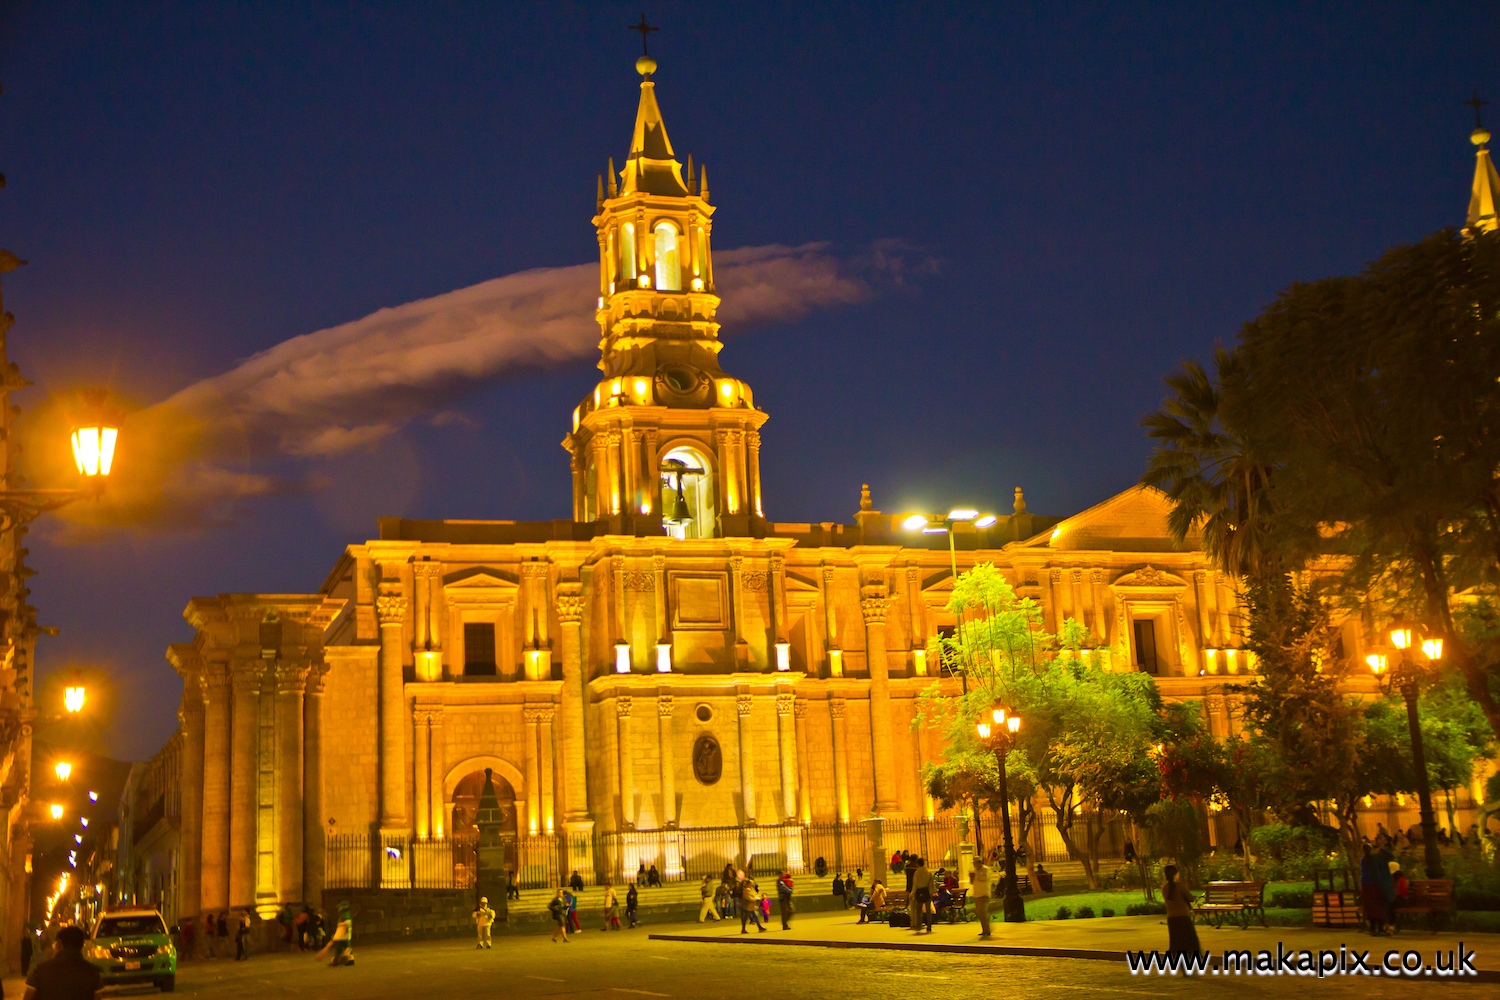 Arequipa is the colonial-era capital of Peru's Arequipa Region